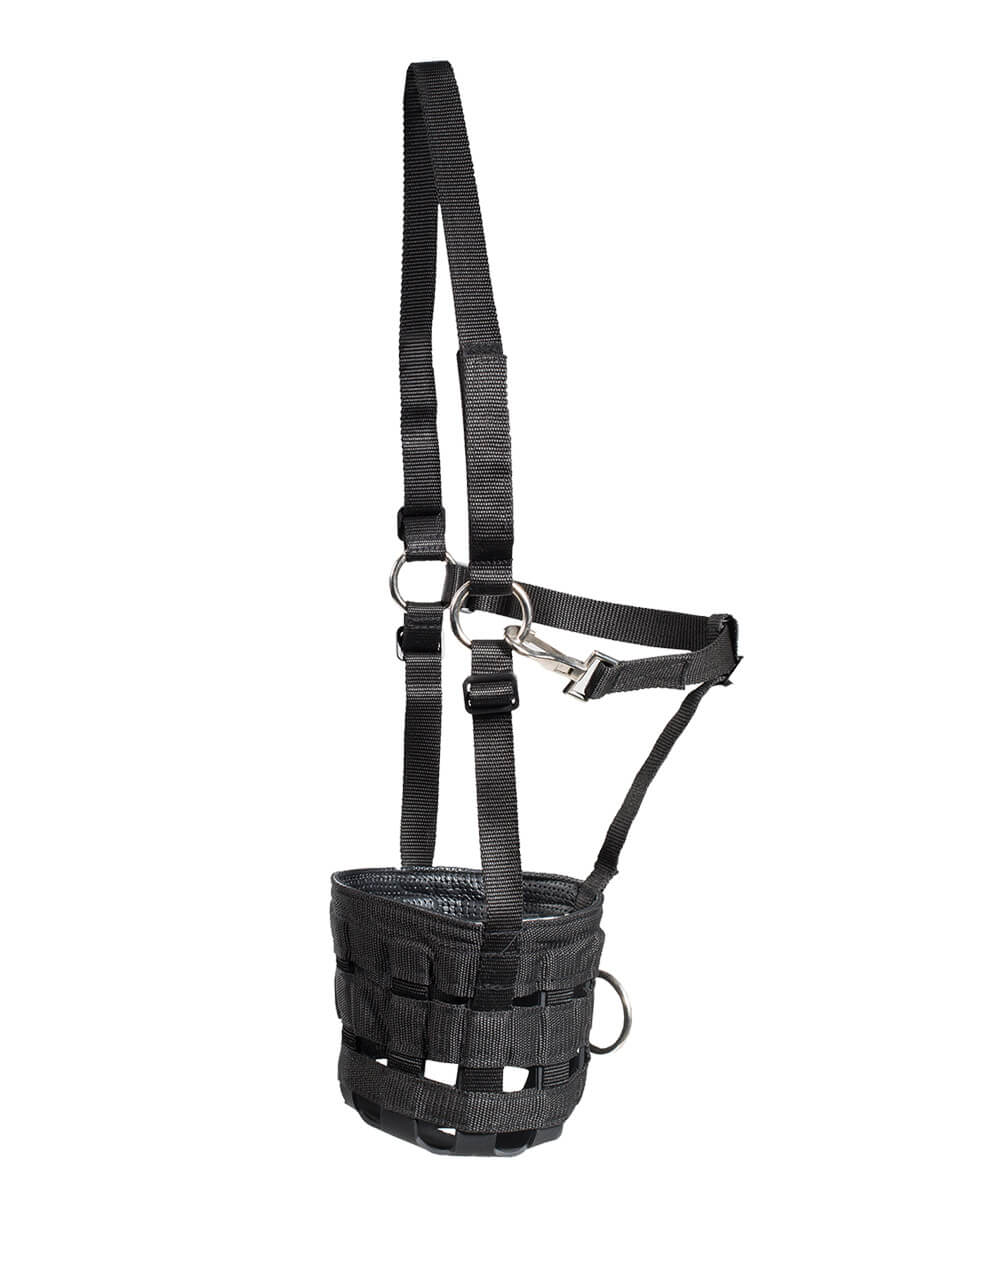 Nylon horse muzzle with neoprene like padding for comfort and adjustable strap